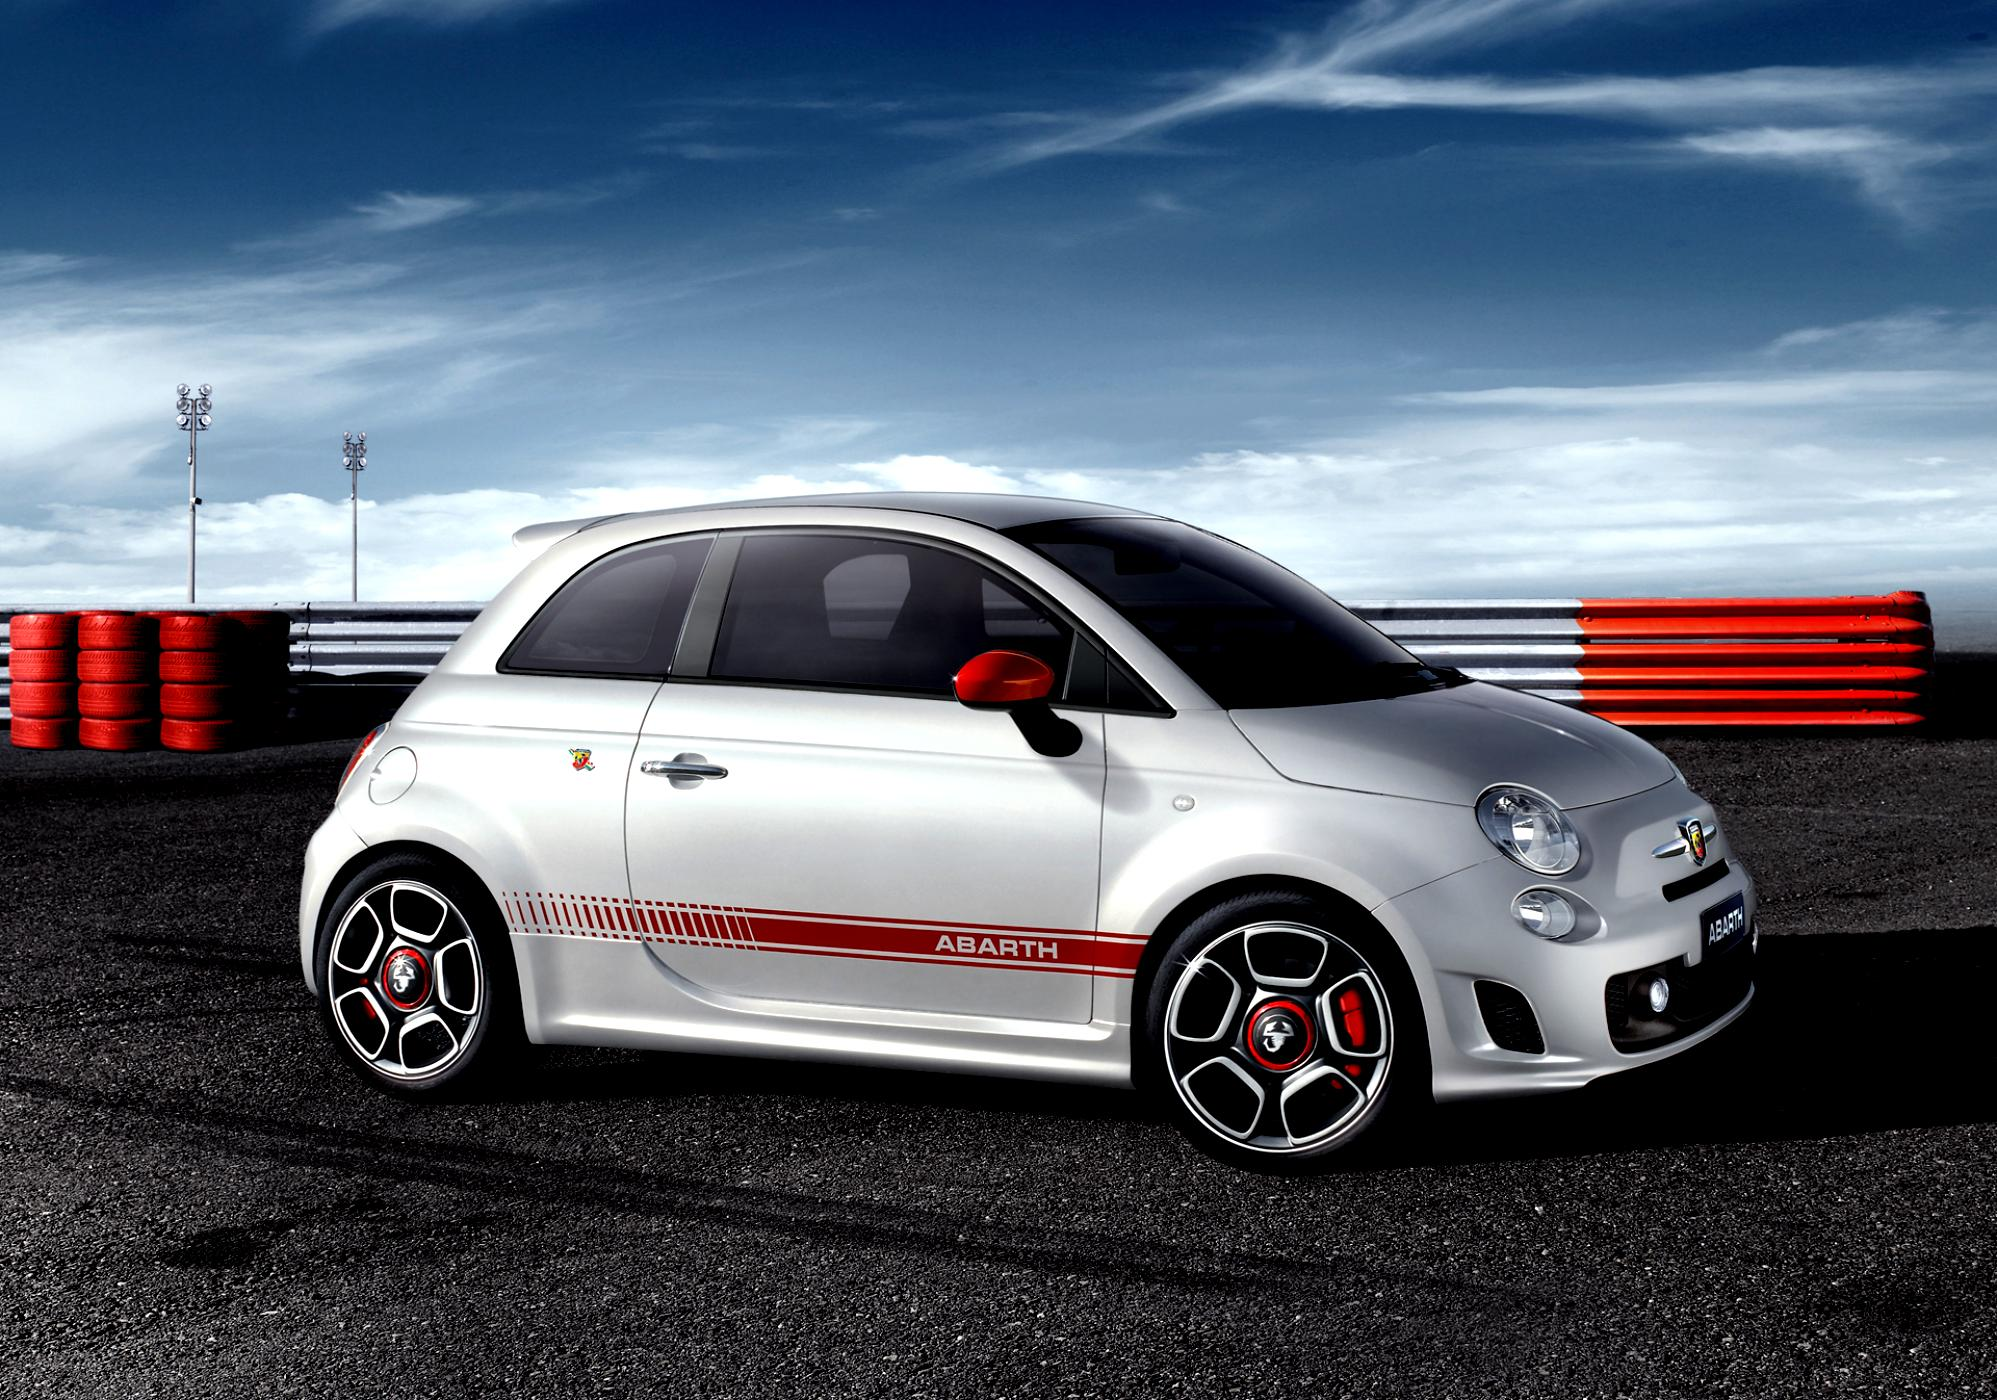 Fiat 500 Abarth 2008 On Motoimg Com